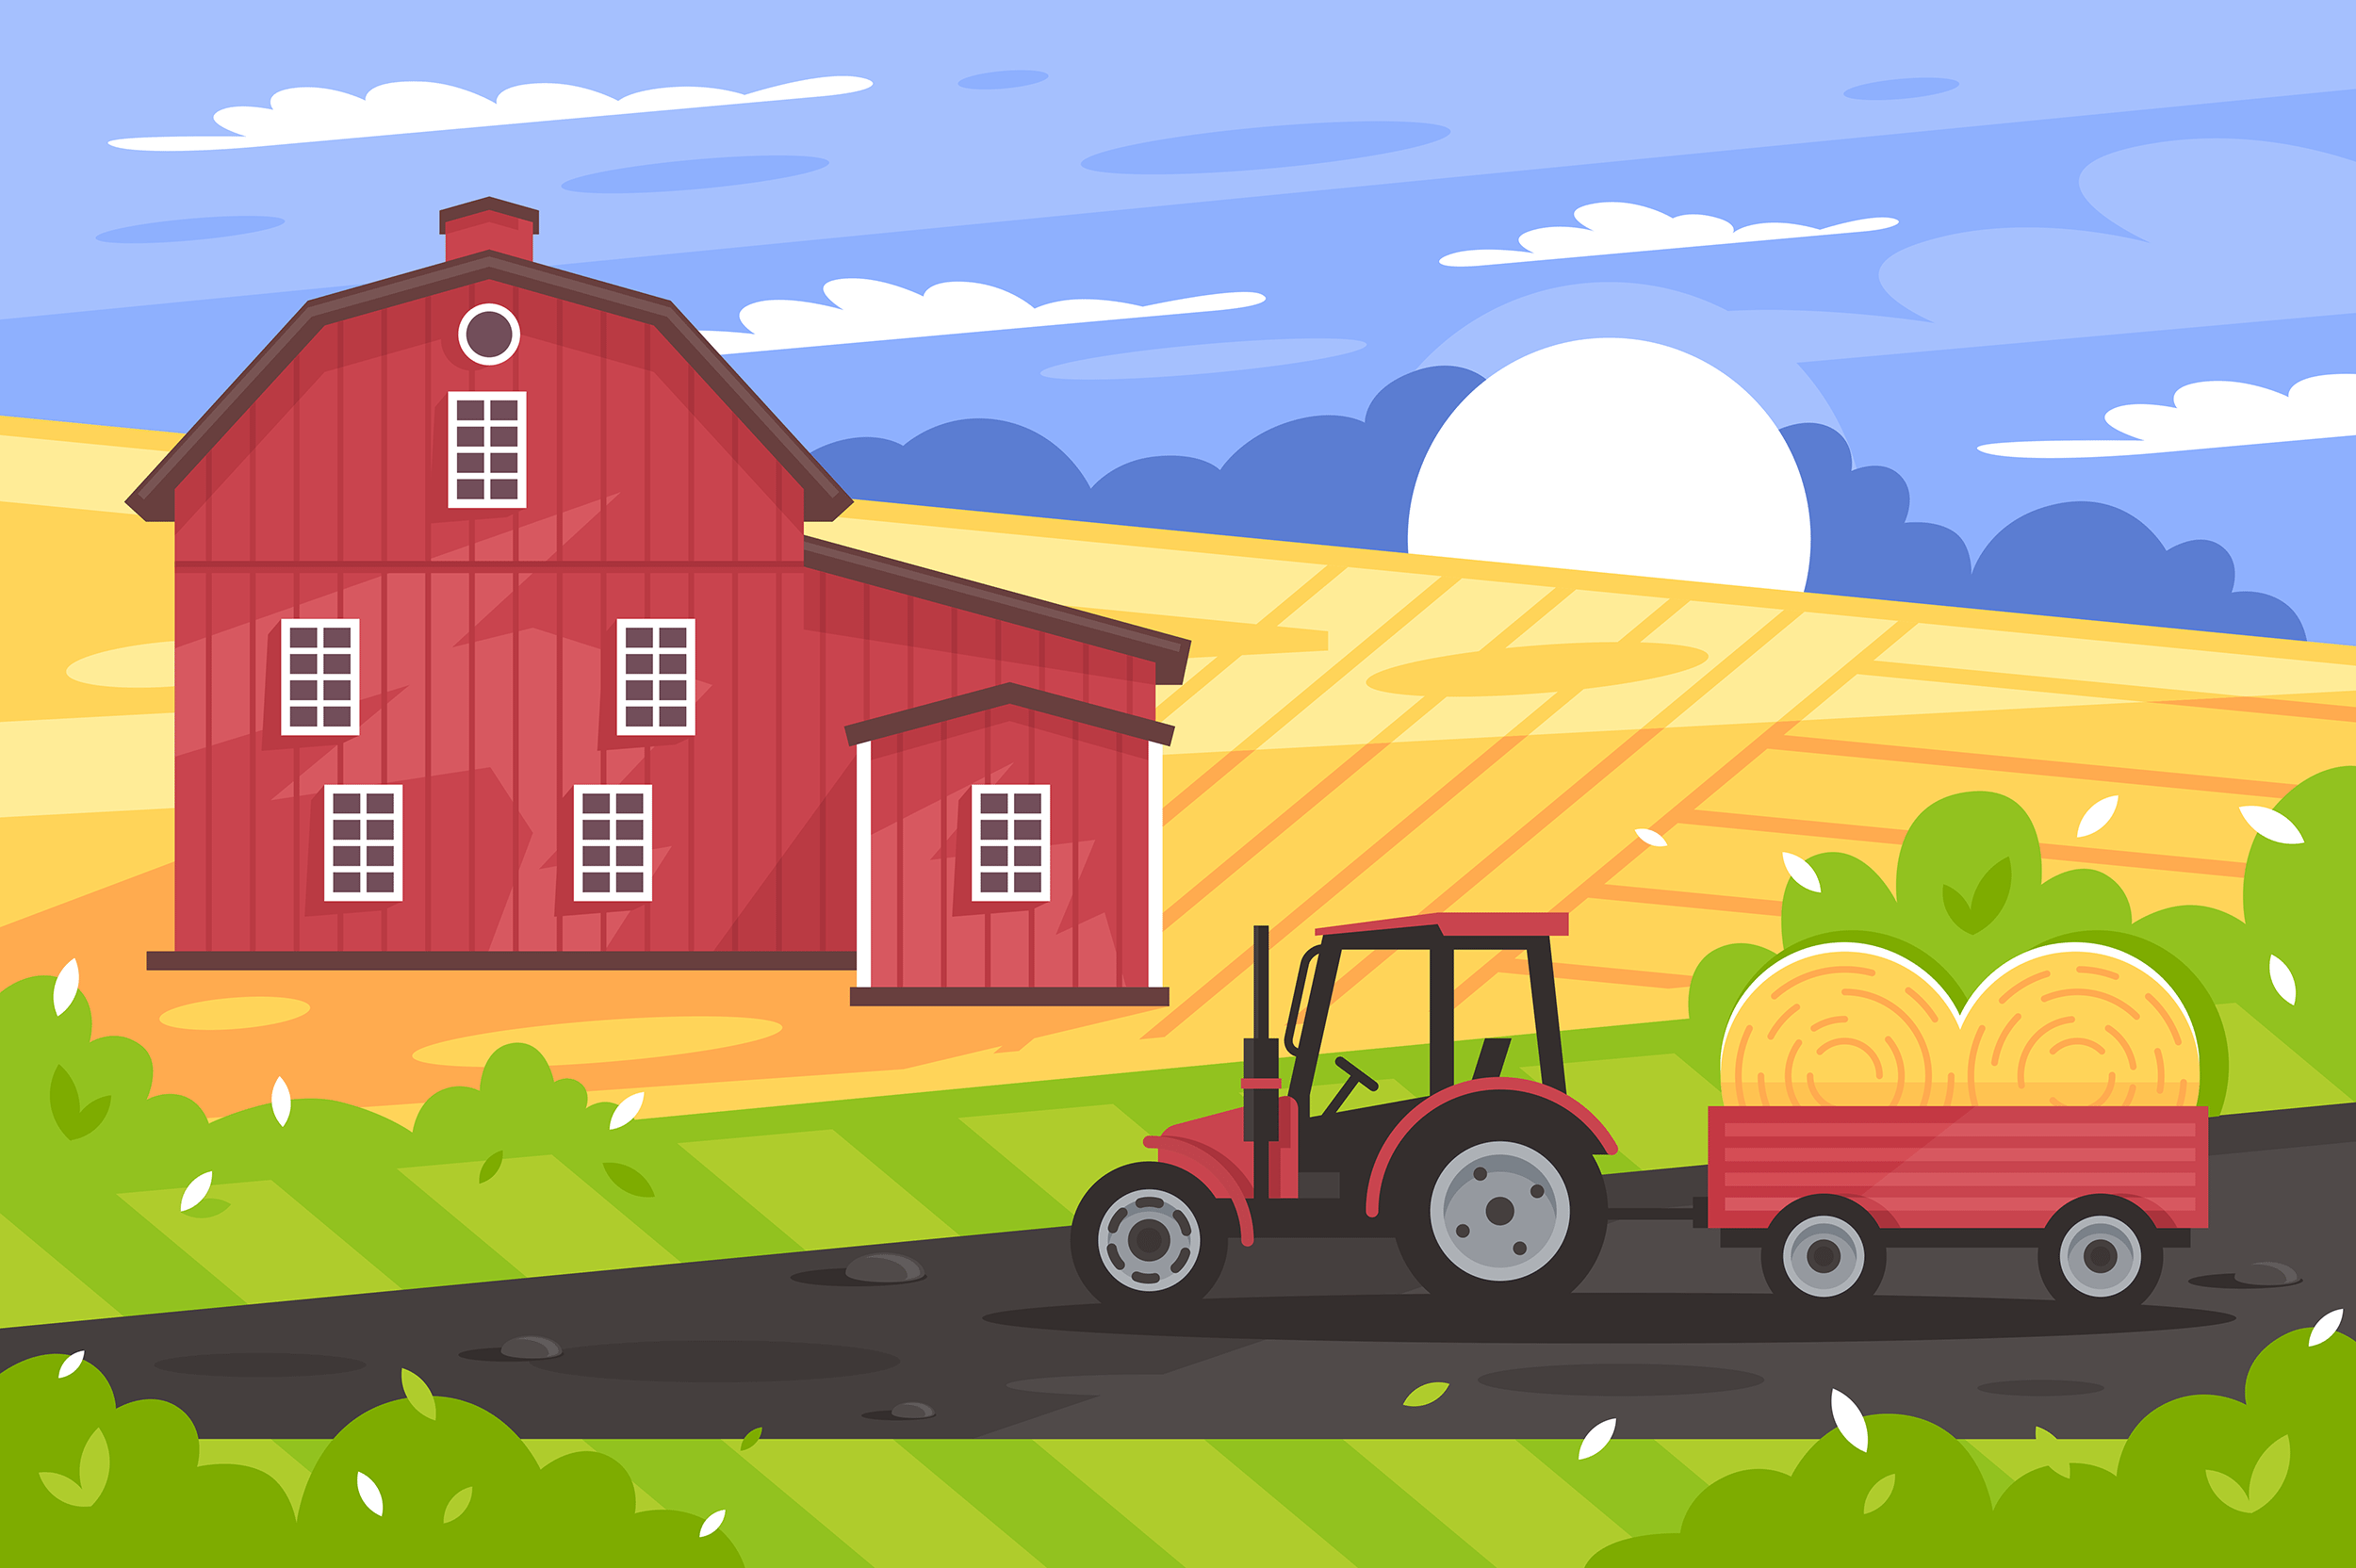 Flat countryside landscape with farm house, road, tractor, field and hay.